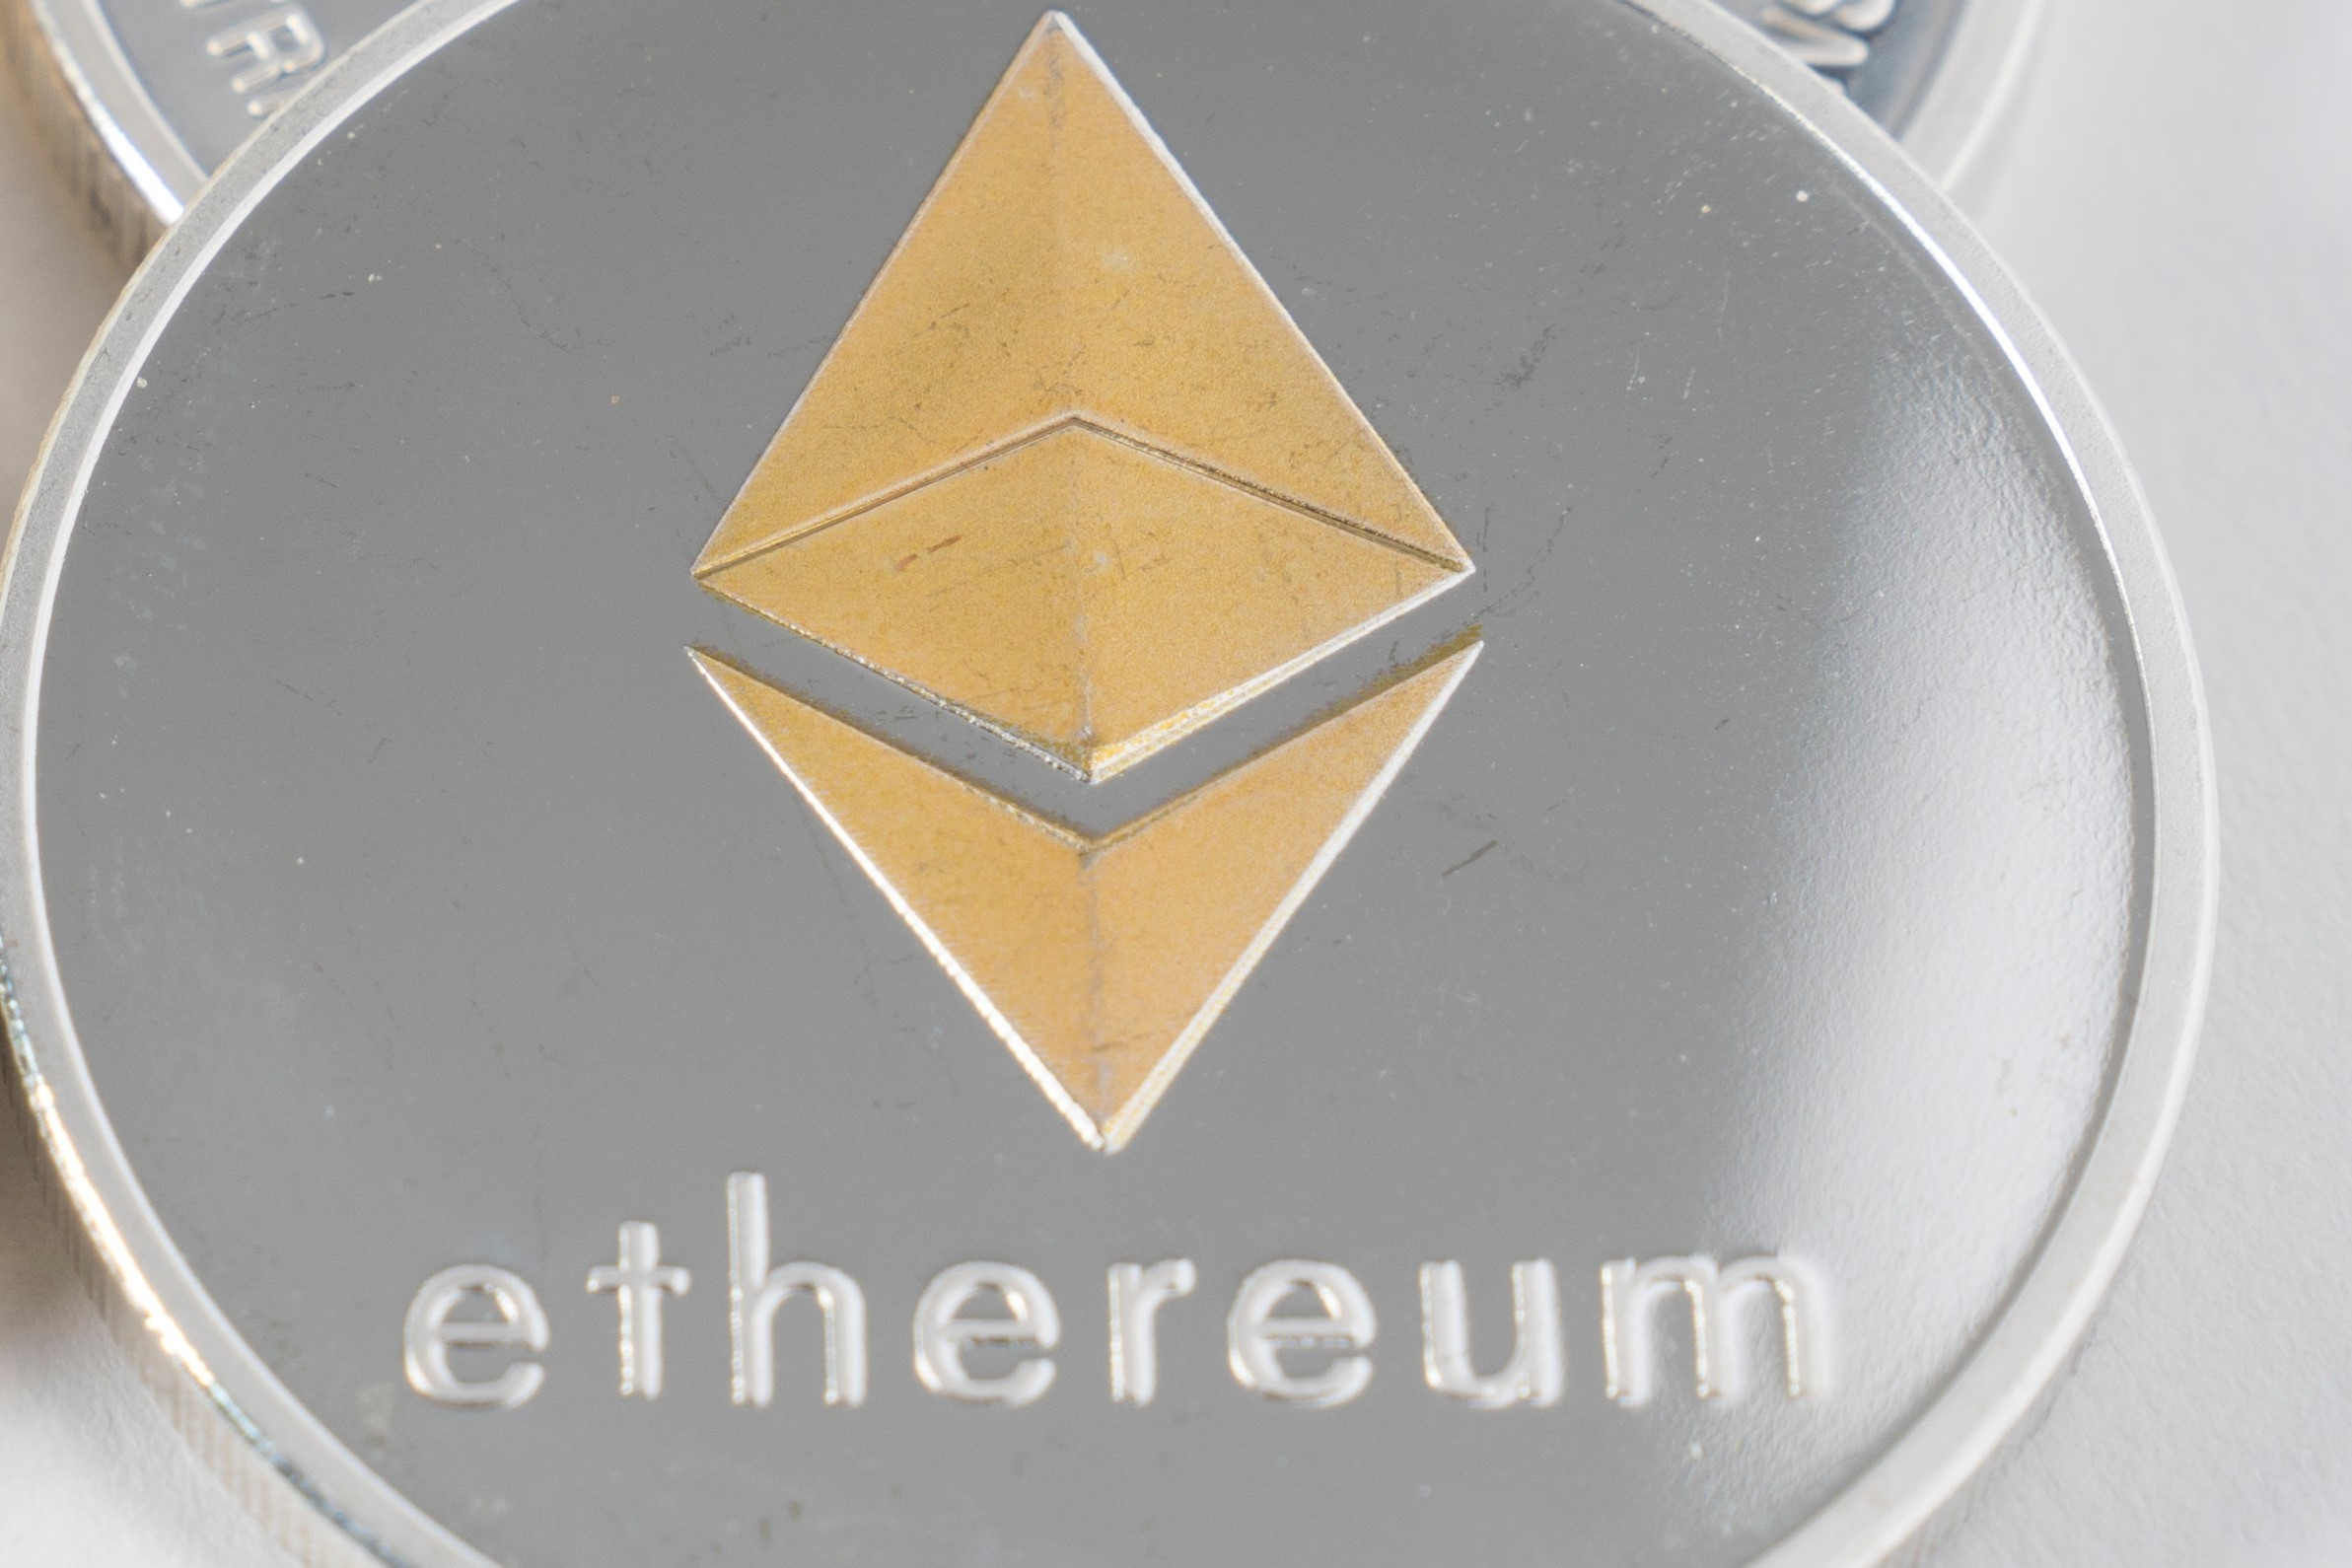 Ethereum Co-founder Lauds Qtum and VeChain, Welcomes SEC Ruling